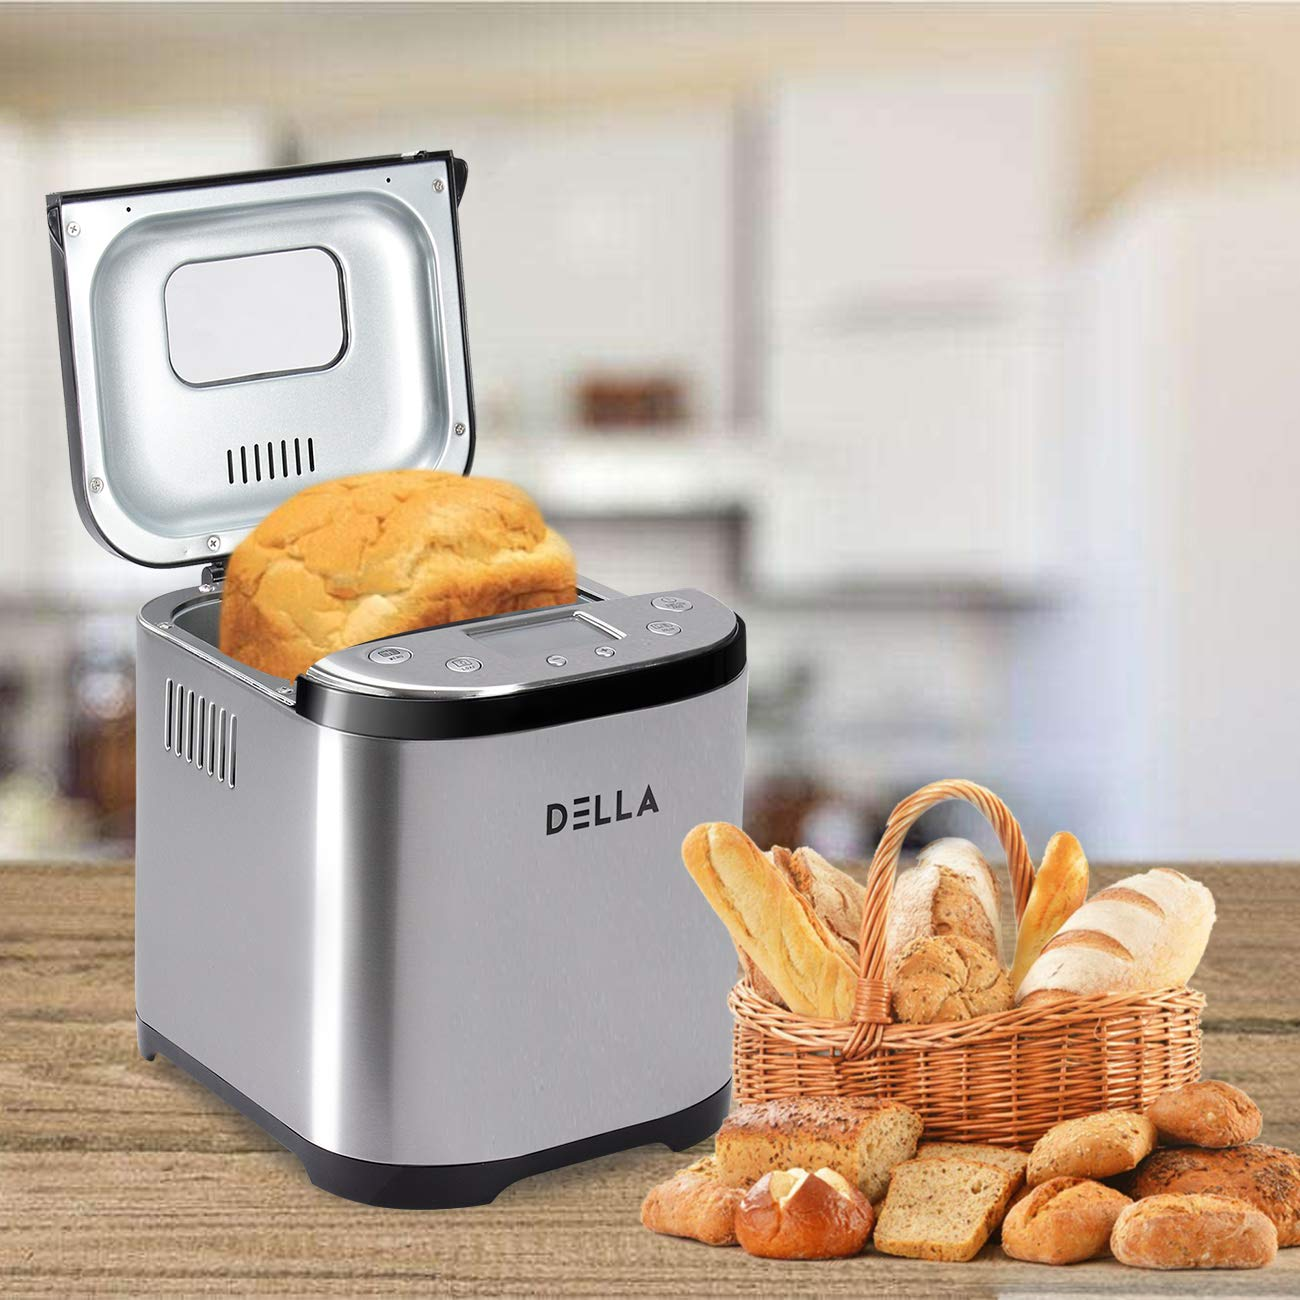 DELLA 2LB Programmable Timer Automatic Multifunctional Bread Maker Kitchen Machine w/ 15 Bread Settings LCD Display, Stainless Steel